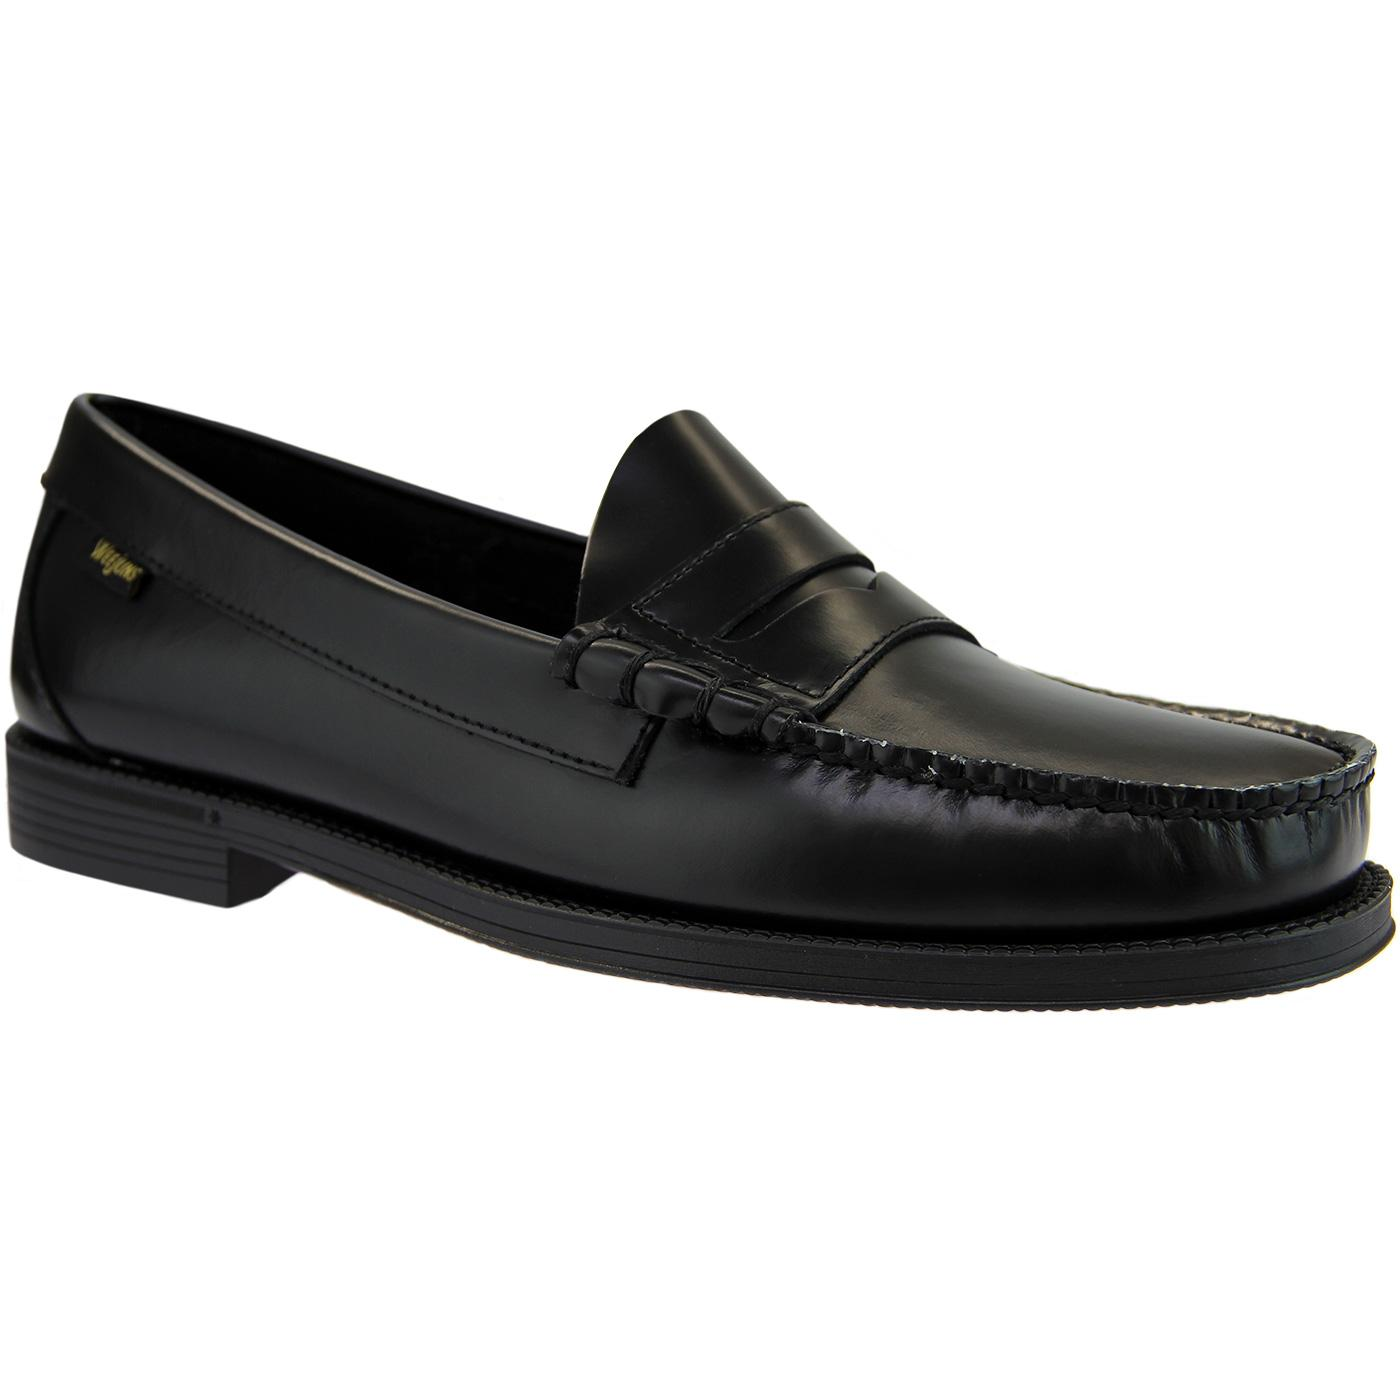 Larson Easy BASS WEEJUNS Mod 60's Penny Loafers B